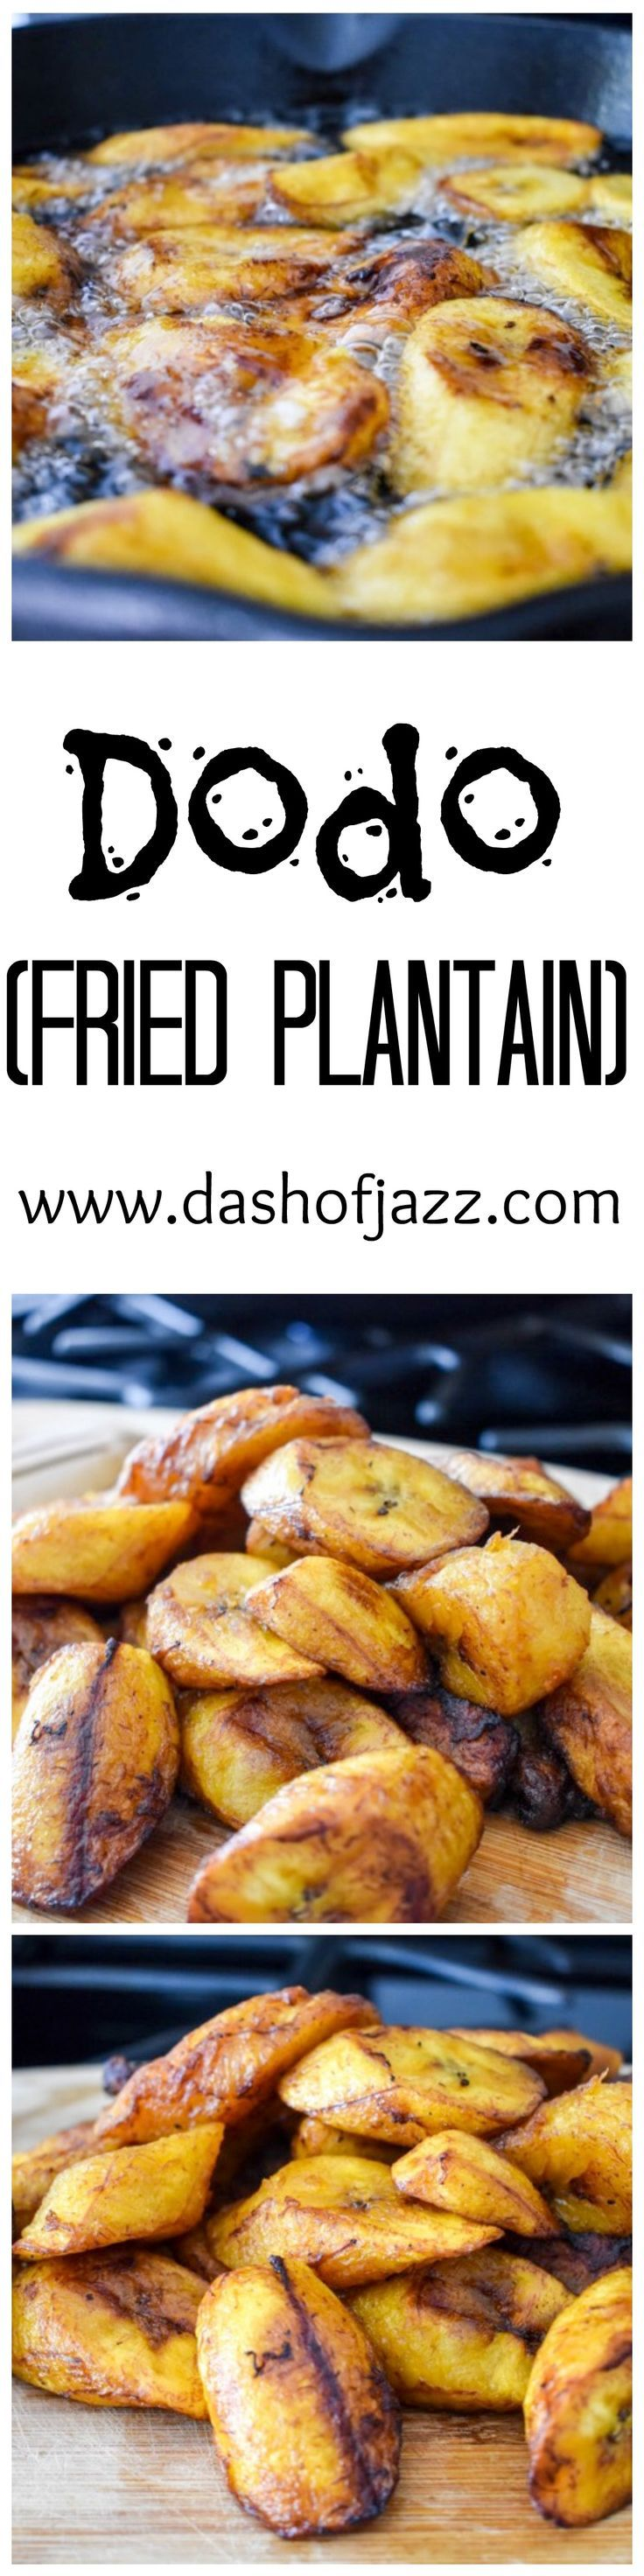 The 25 best latin american cuisine ideas on pinterest latin dodo fried plantain delicious vegan recipesvegan food forumfinder Gallery